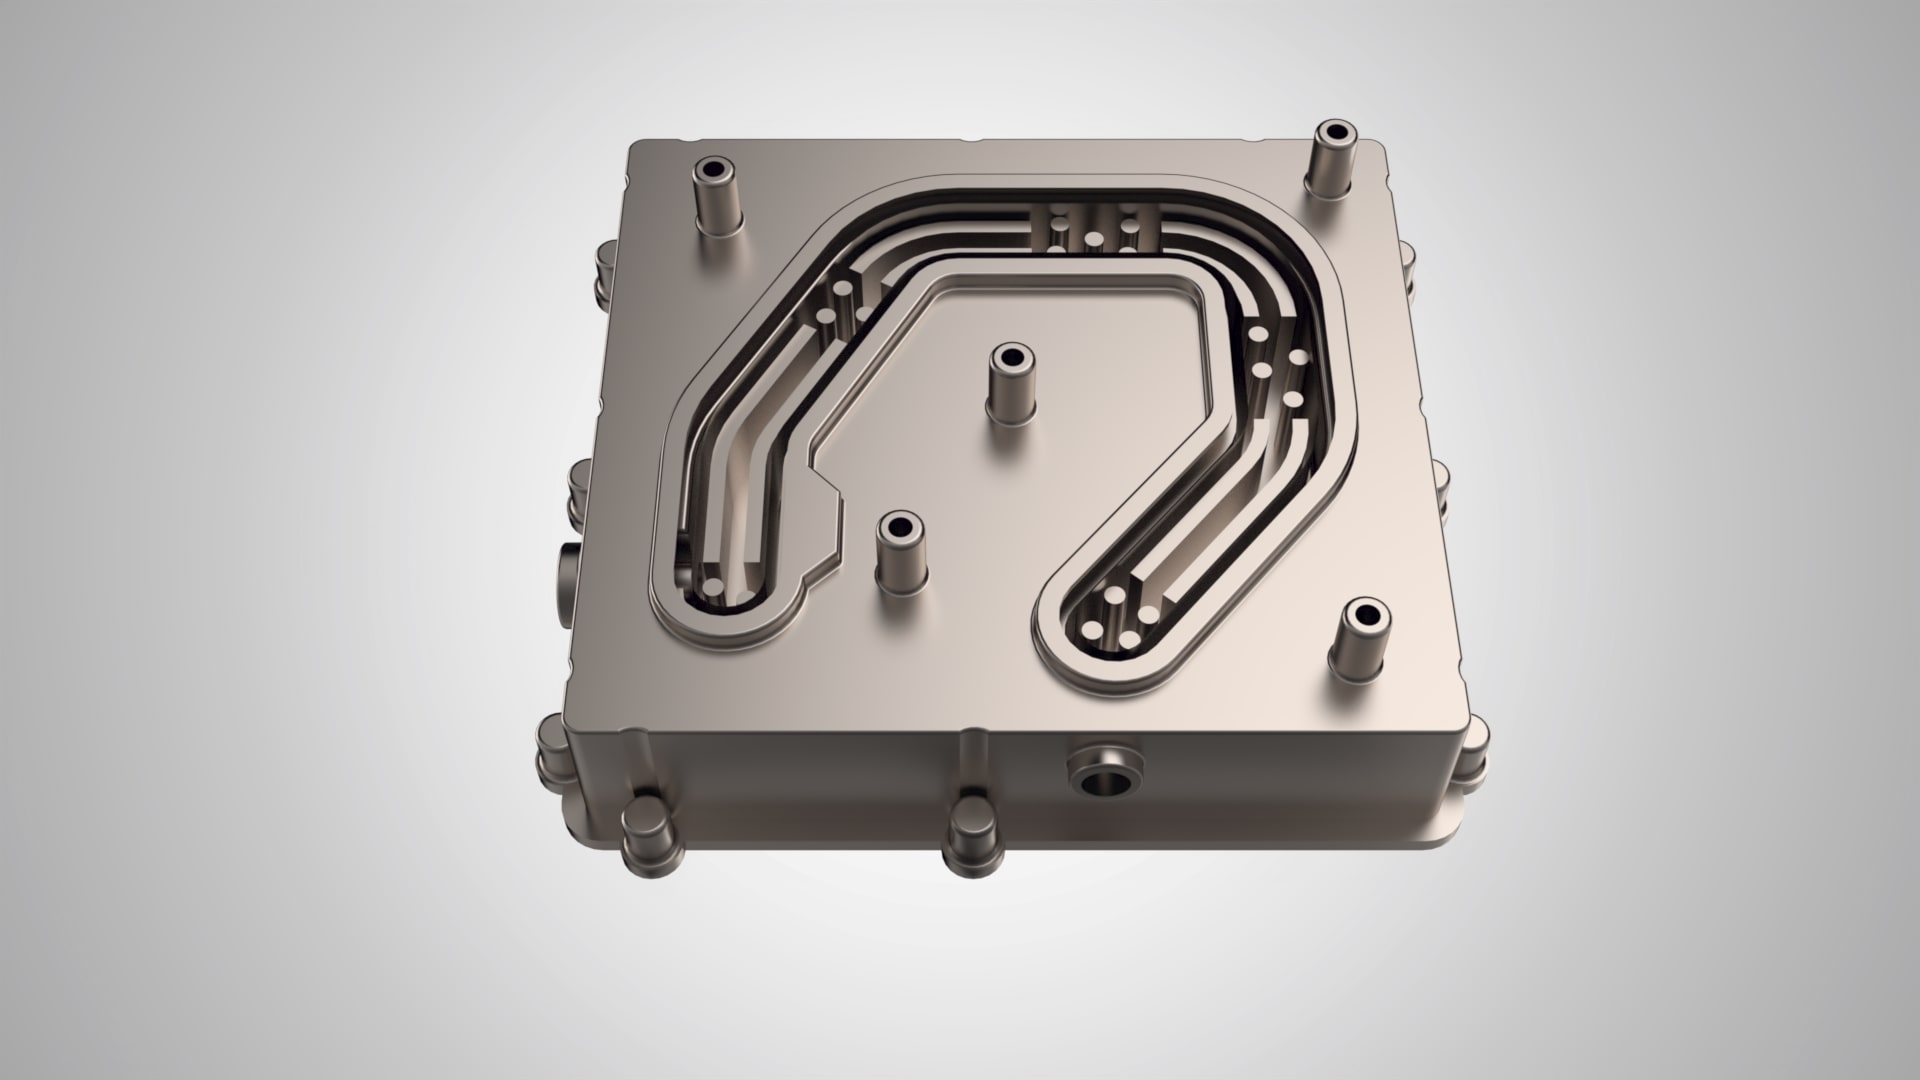 Internal part of a water heat sink for E-mobility